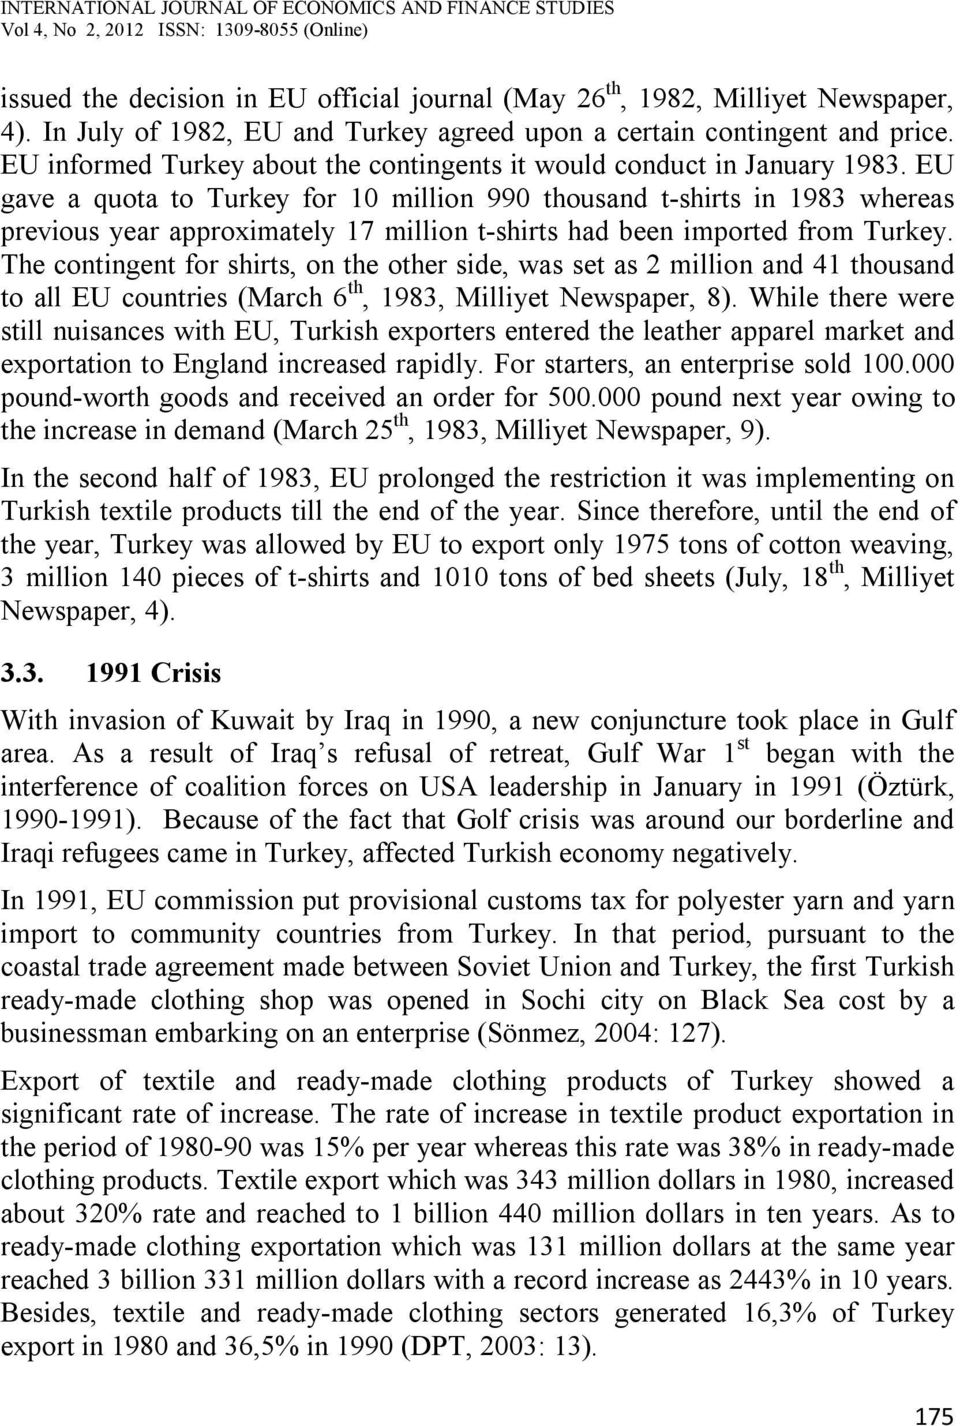 EU gave a quota to Turkey for 10 million 990 thousand t-shirts in 1983 whereas previous year approximately 17 million t-shirts had been imported from Turkey.